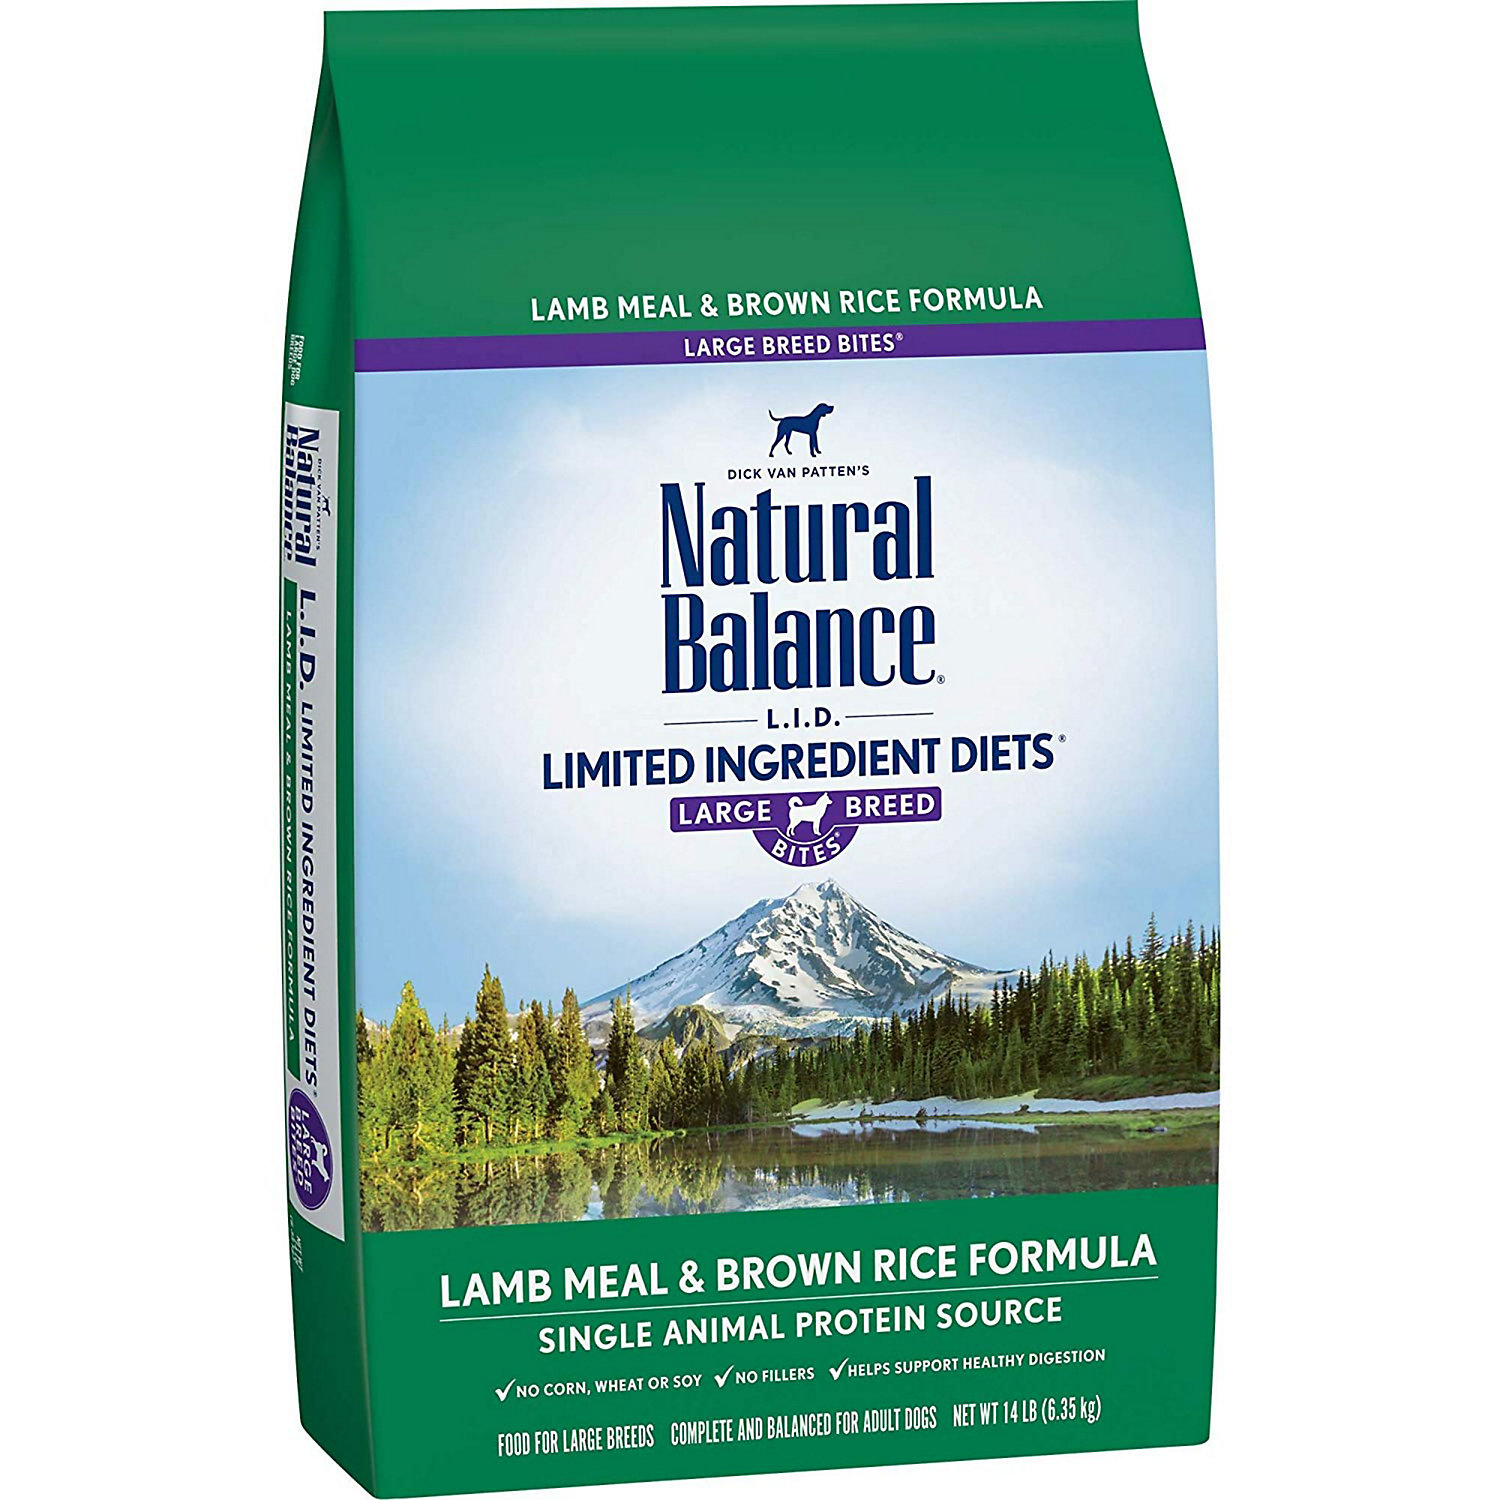 Natural Balance L.i.d. Limited Ingredient Diets Lamb Meal Brown Rice Large Breed Dog Food 14 Lbs.